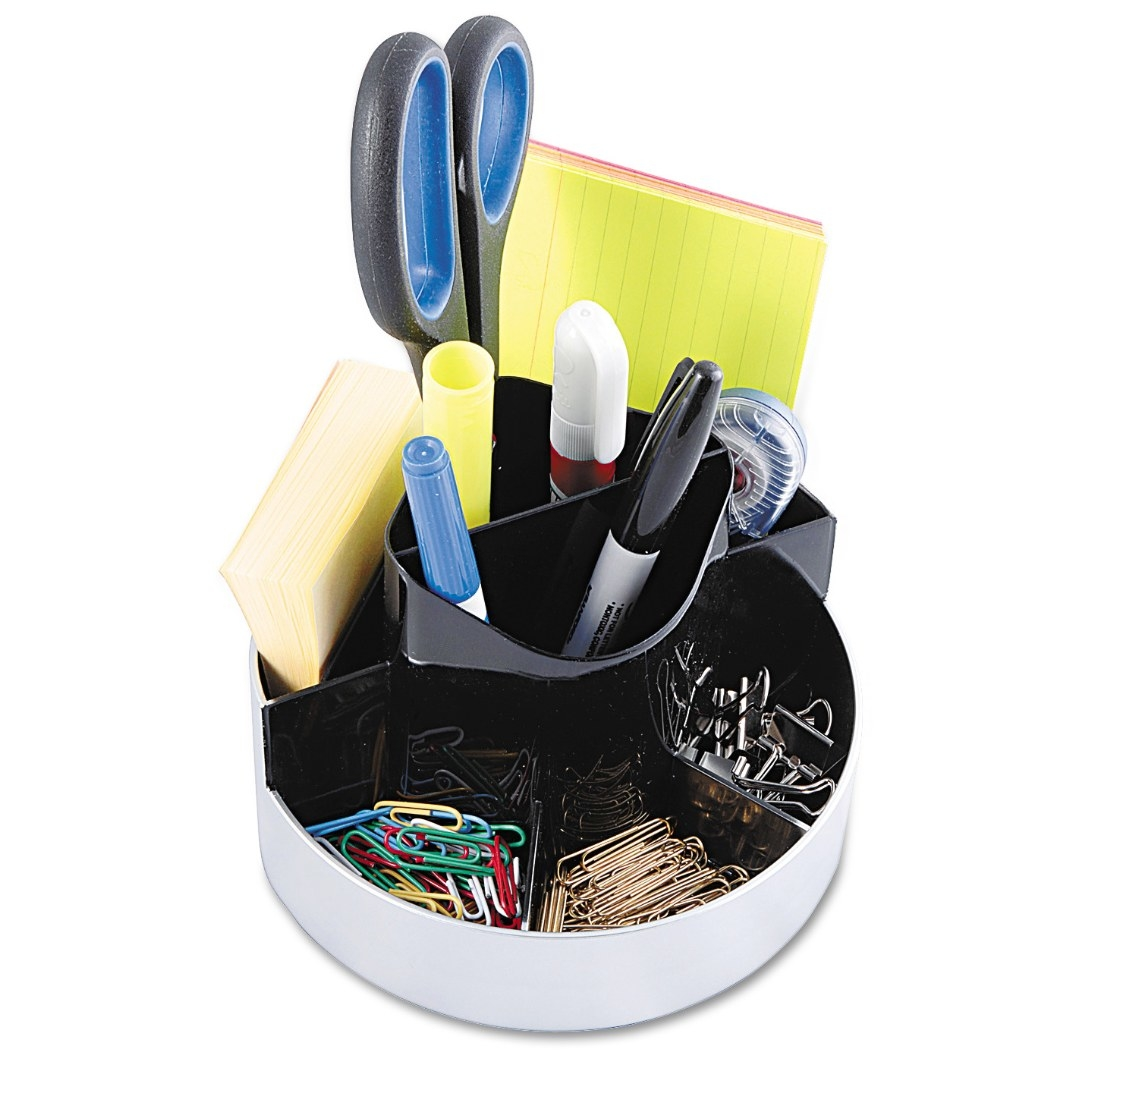 The desktop organizer being used to hold office supplies